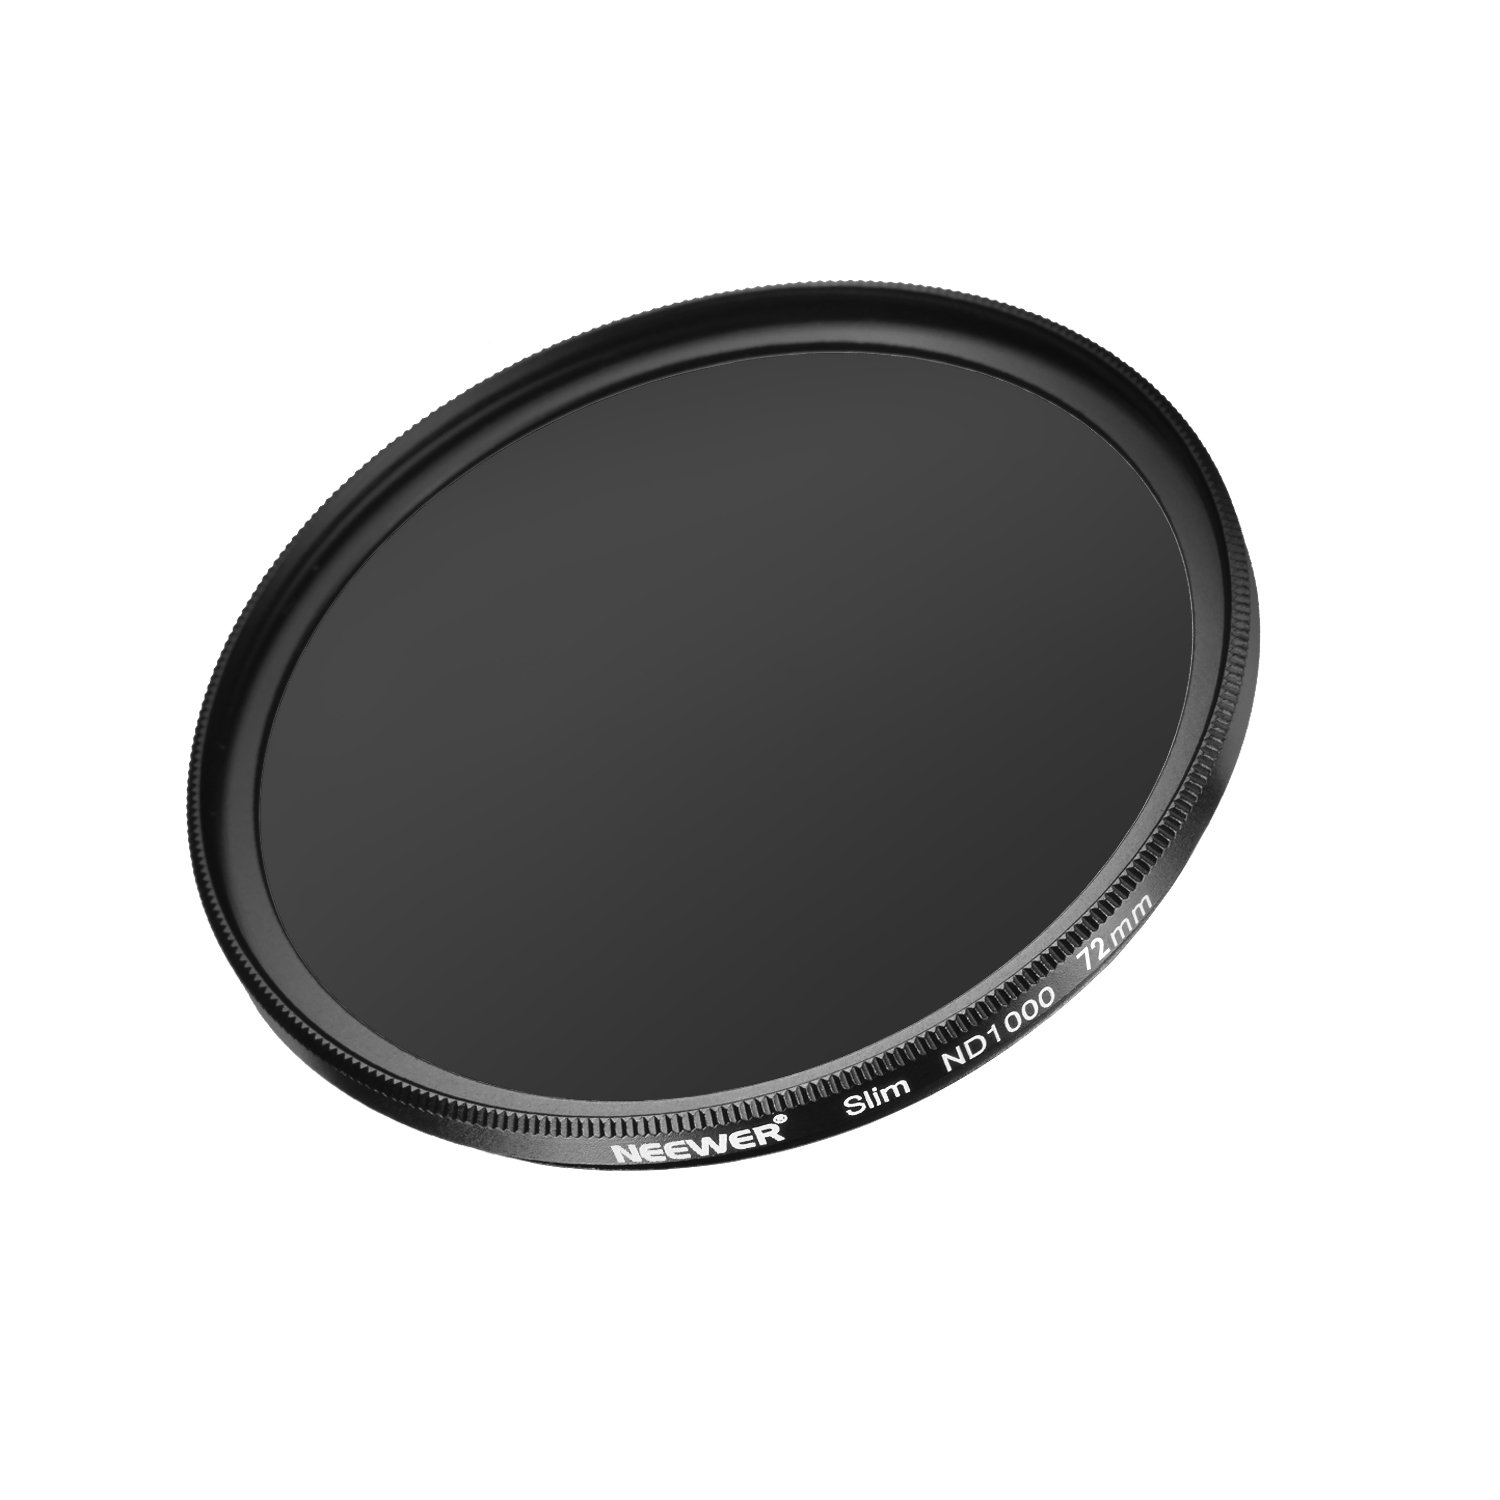 Neewer Slim 67MM Neutral Density ND 1000 Camera Lens Filter 10 Stop Optical Glass and Matte Black Flame for Lens with 67MM Thread Size, Ideal for Wide Angle Lenses 10088563